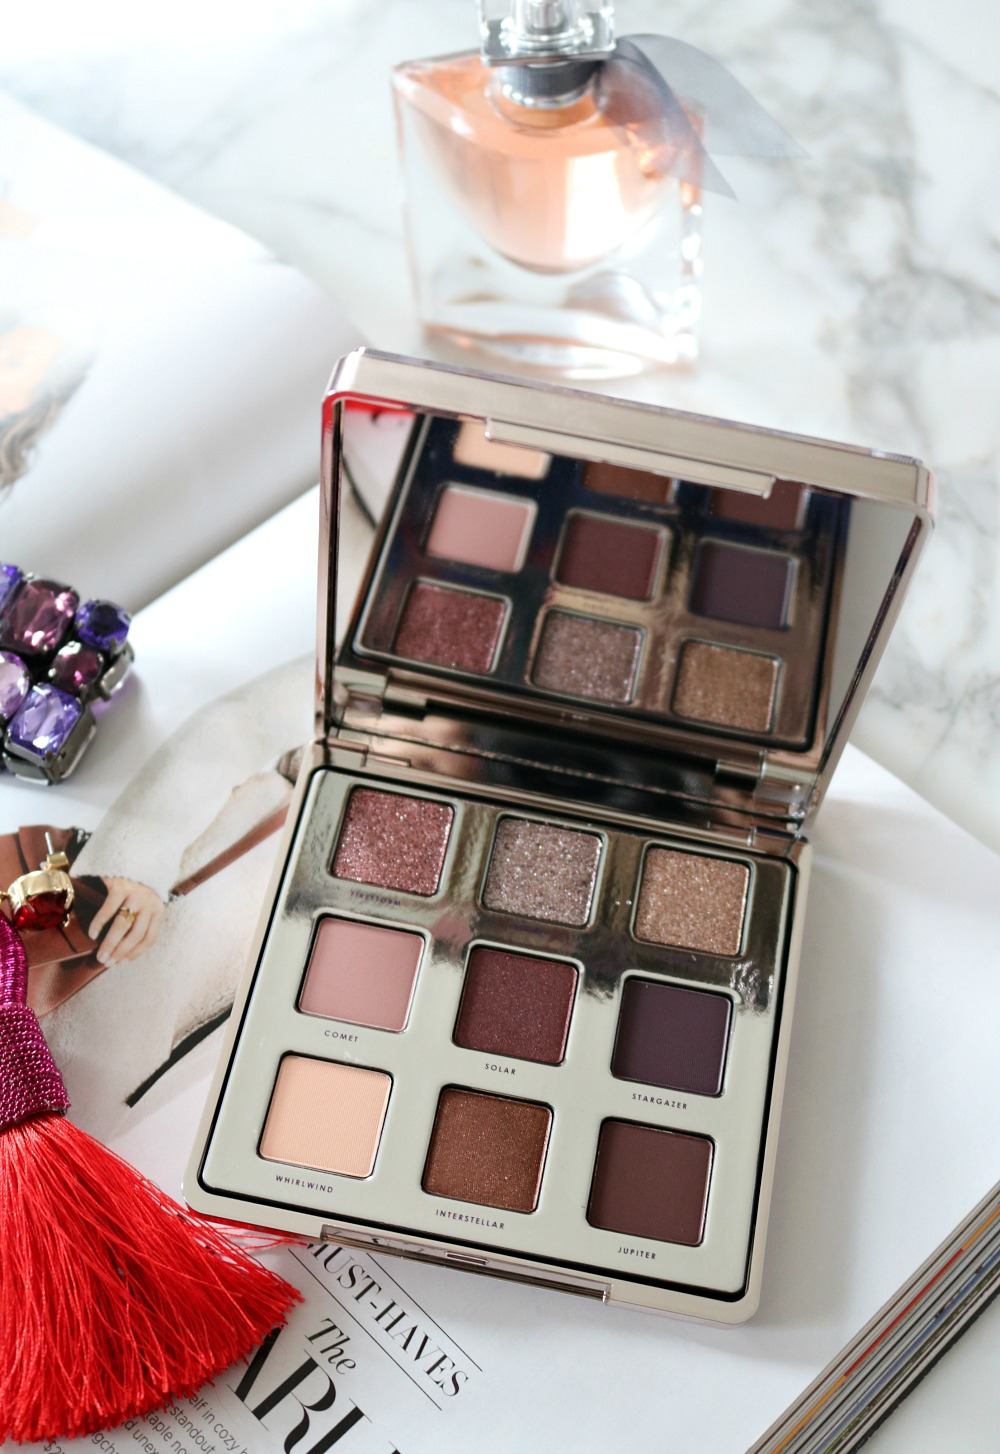 Ciate Glitter Storm Eyeshadow Palette Review I Holiday Makeup 2018 I DreaminLace.com #HolidayMakeup #Eyeshadow #Festive #Glitter